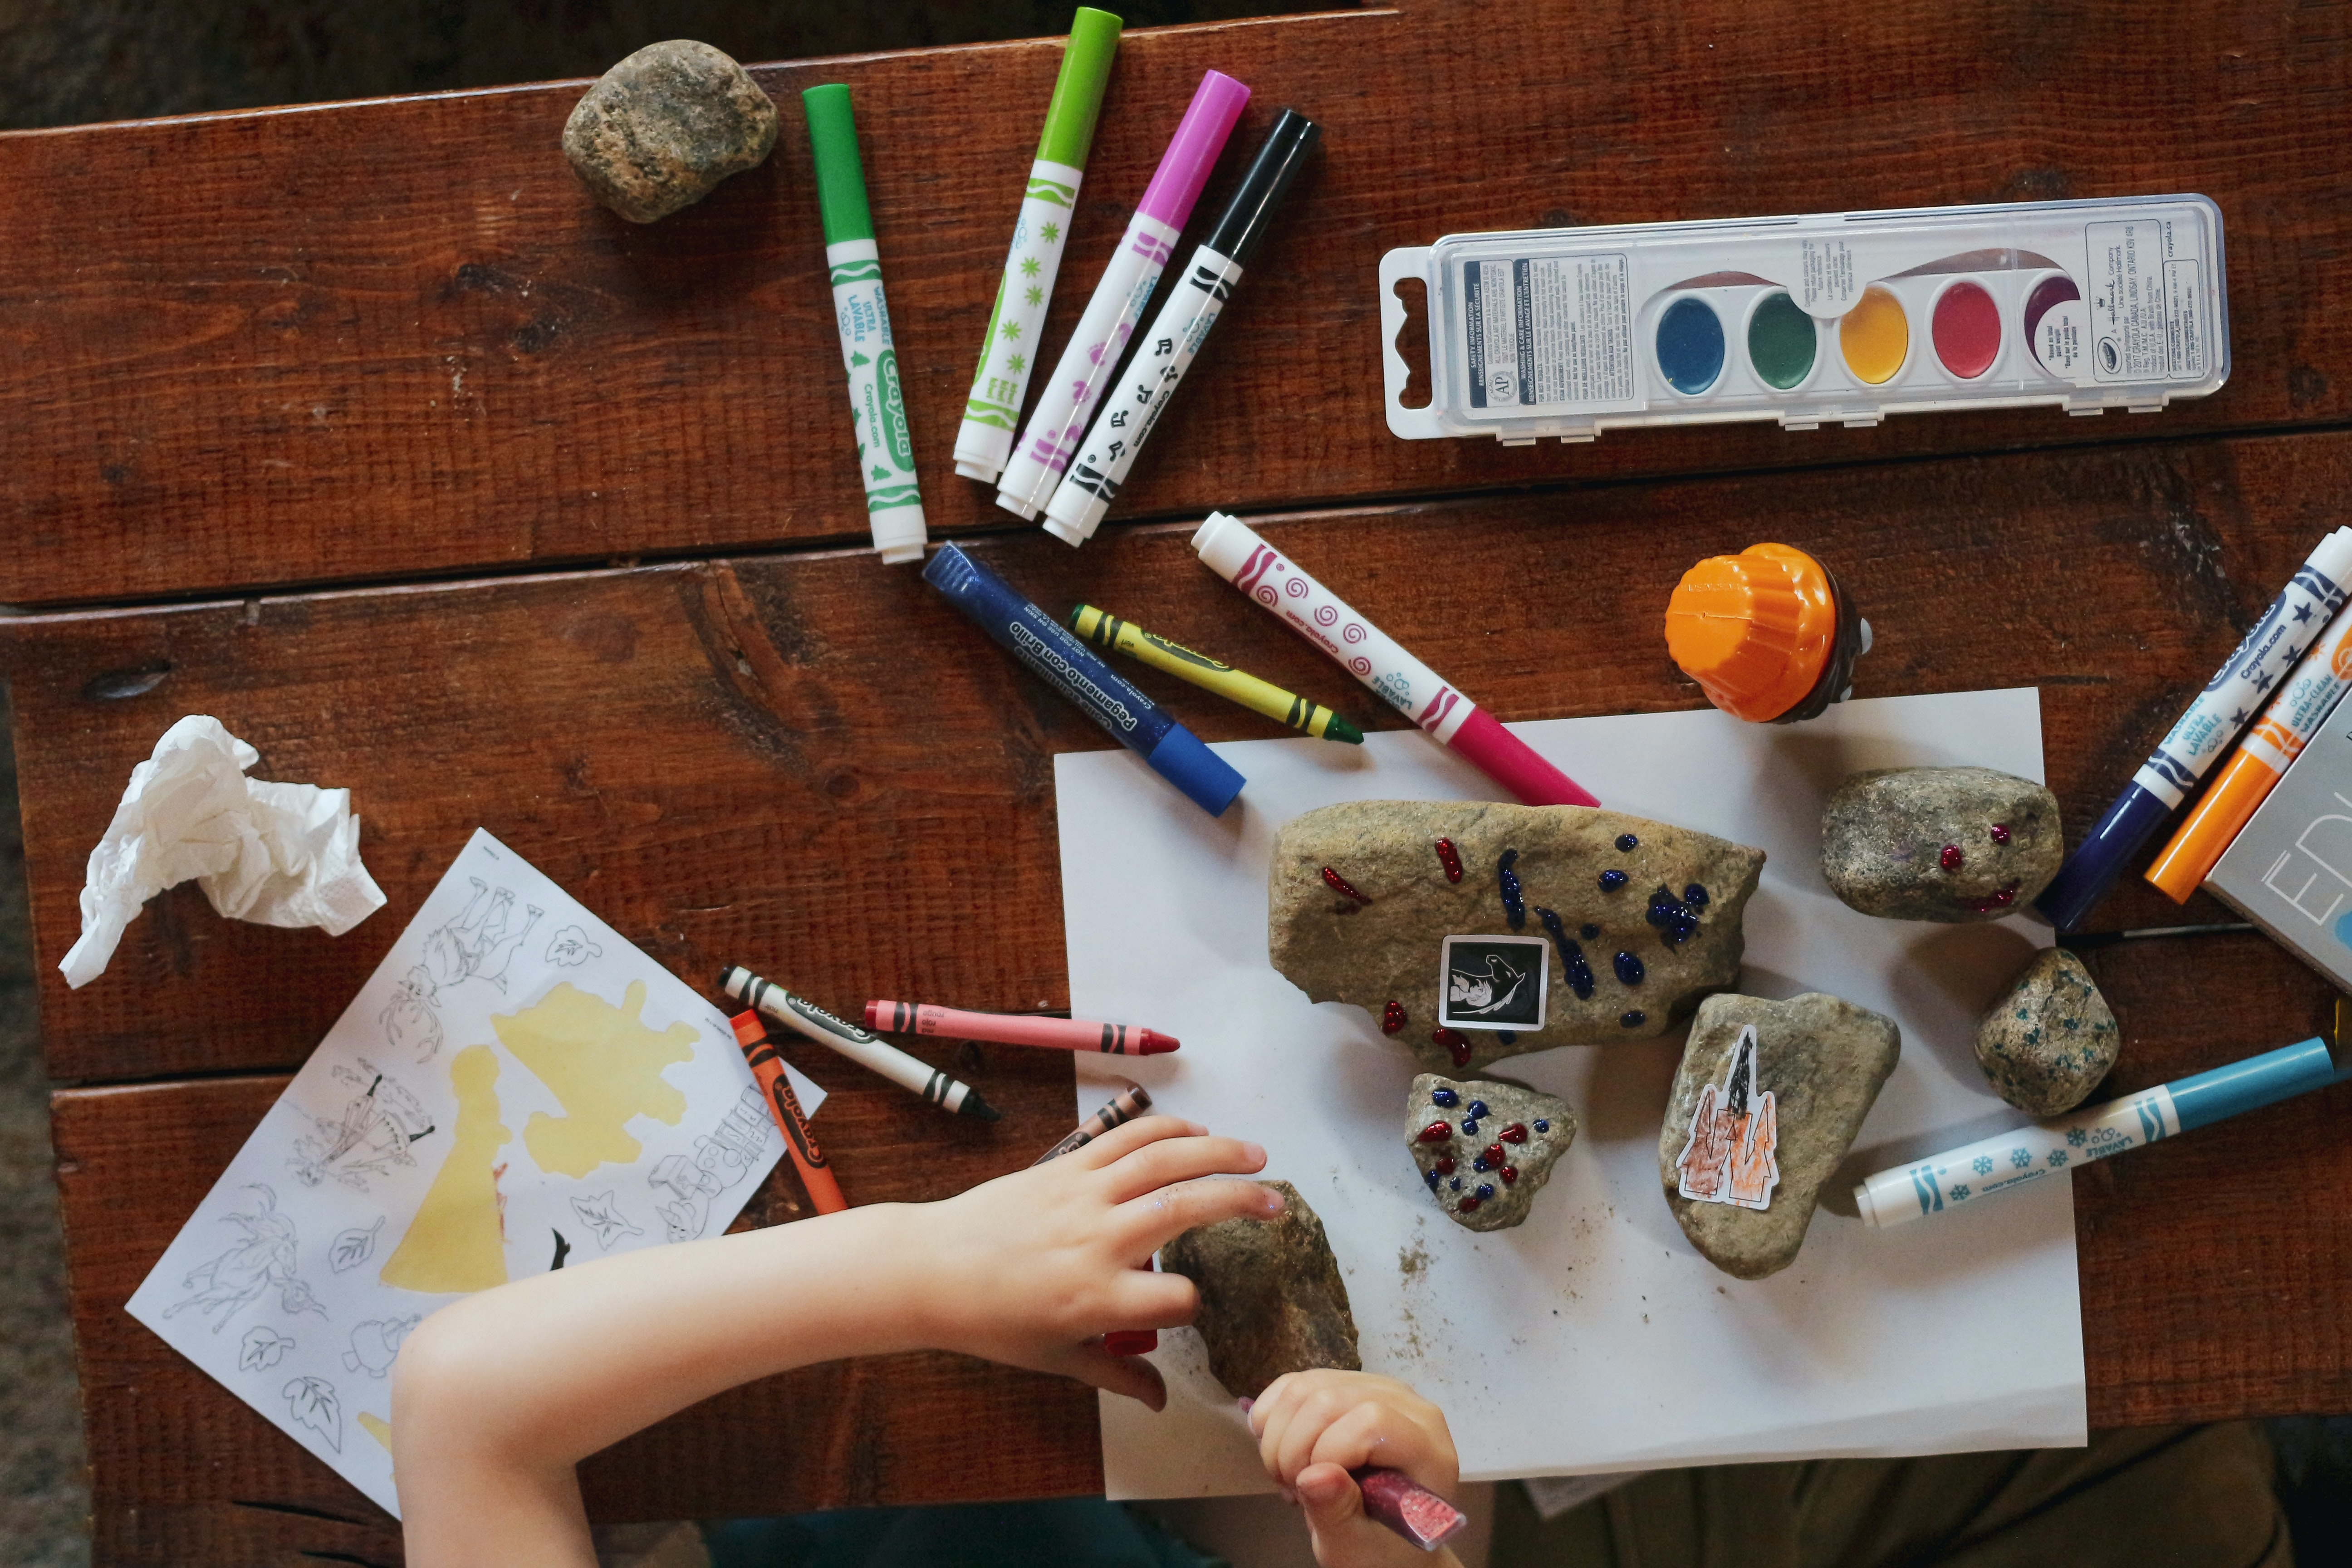 child decorating rocks with stickers and glitter glue